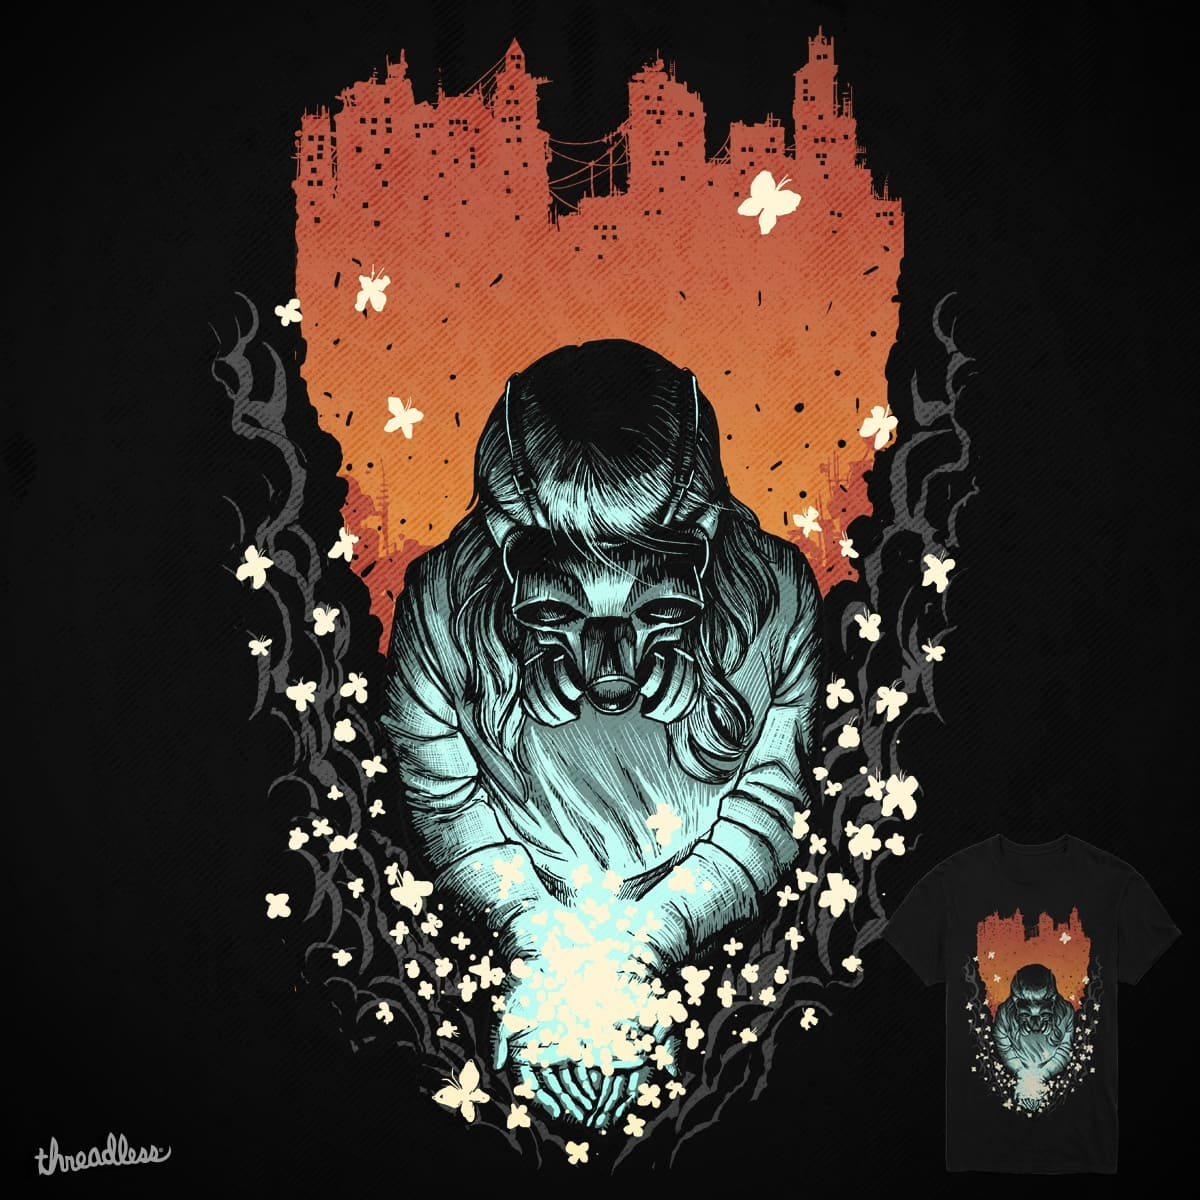 Light of life by digitalcarbine on Threadless